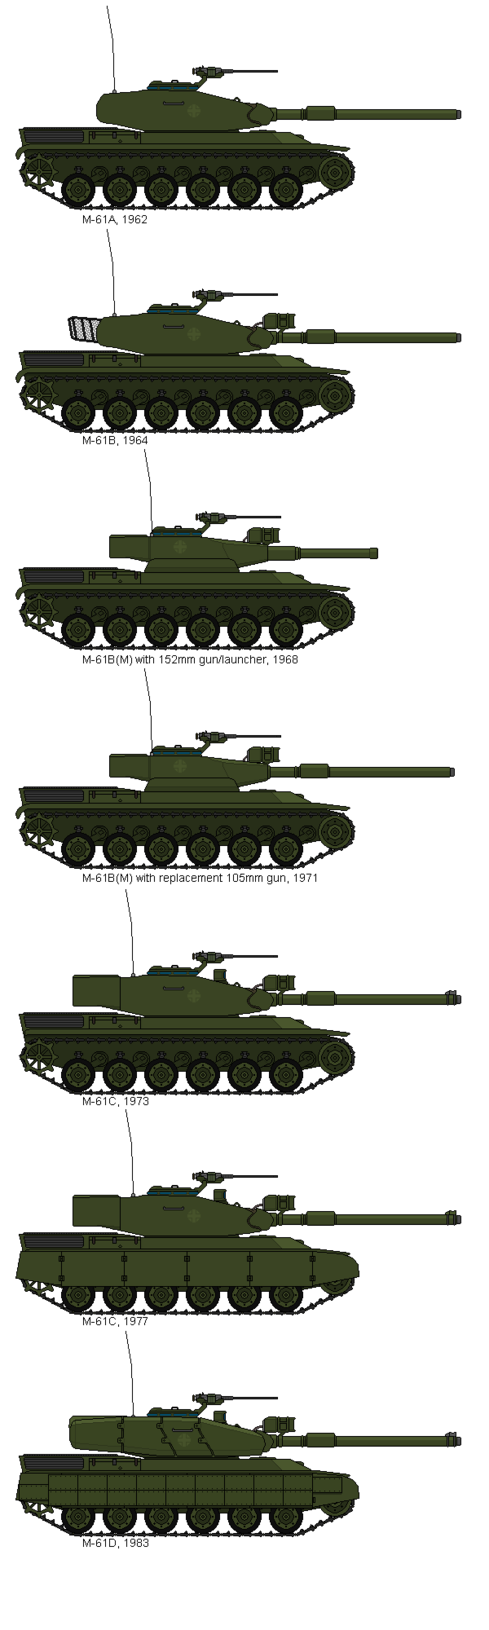 Fordorsia M52 Hamster Protection: 10-90mm Armament: 90mm AT Gun Pintle-mounted 15mm HMG Crew: 4 (Commander, Driver, Gunner, Loader/Radio Operator) Developed in 1952 and adopted the following year, ...